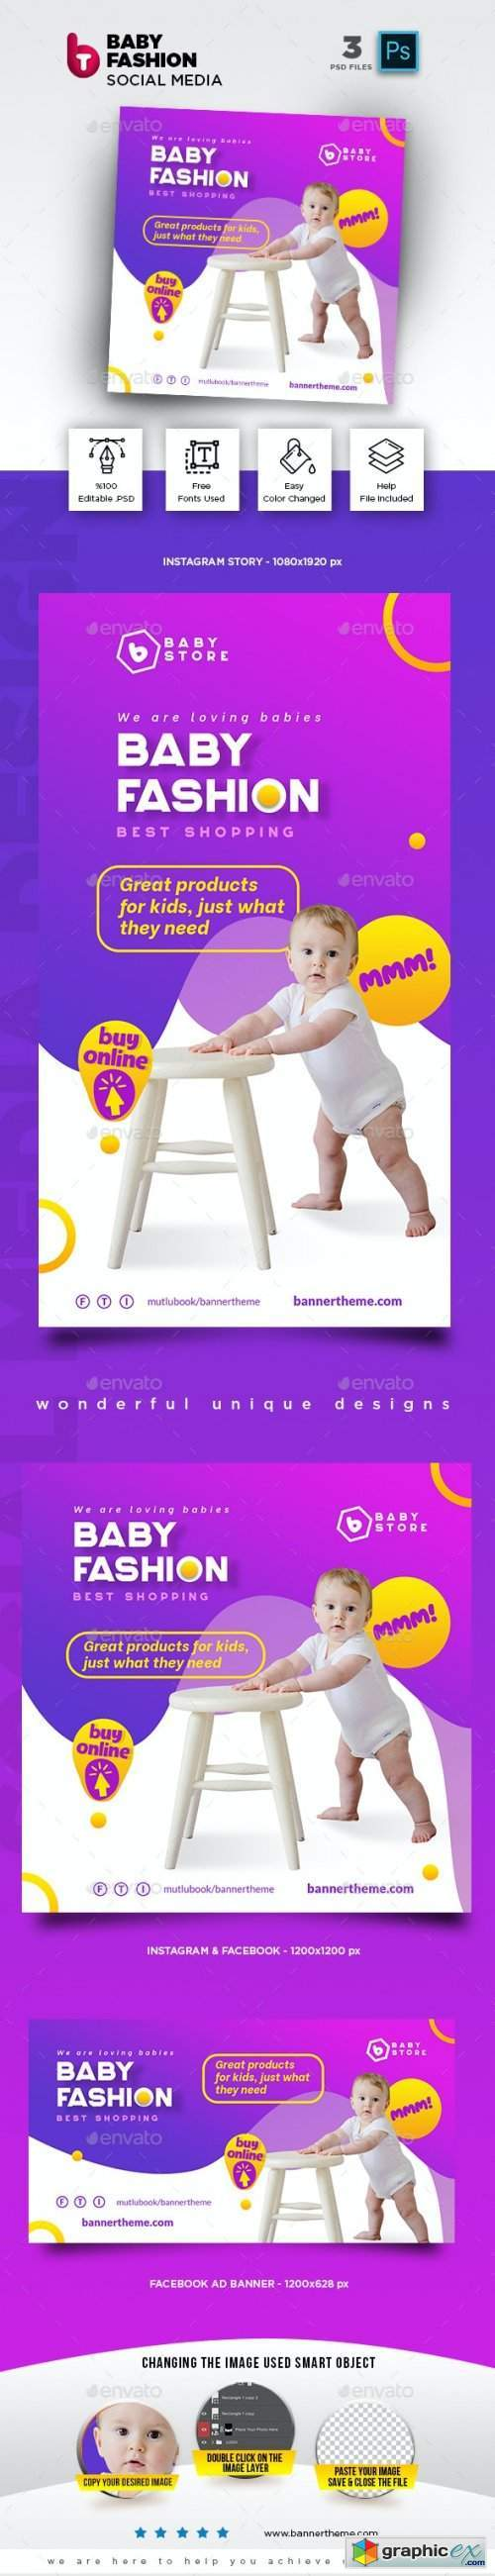 Baby Fashion Social Media Pack